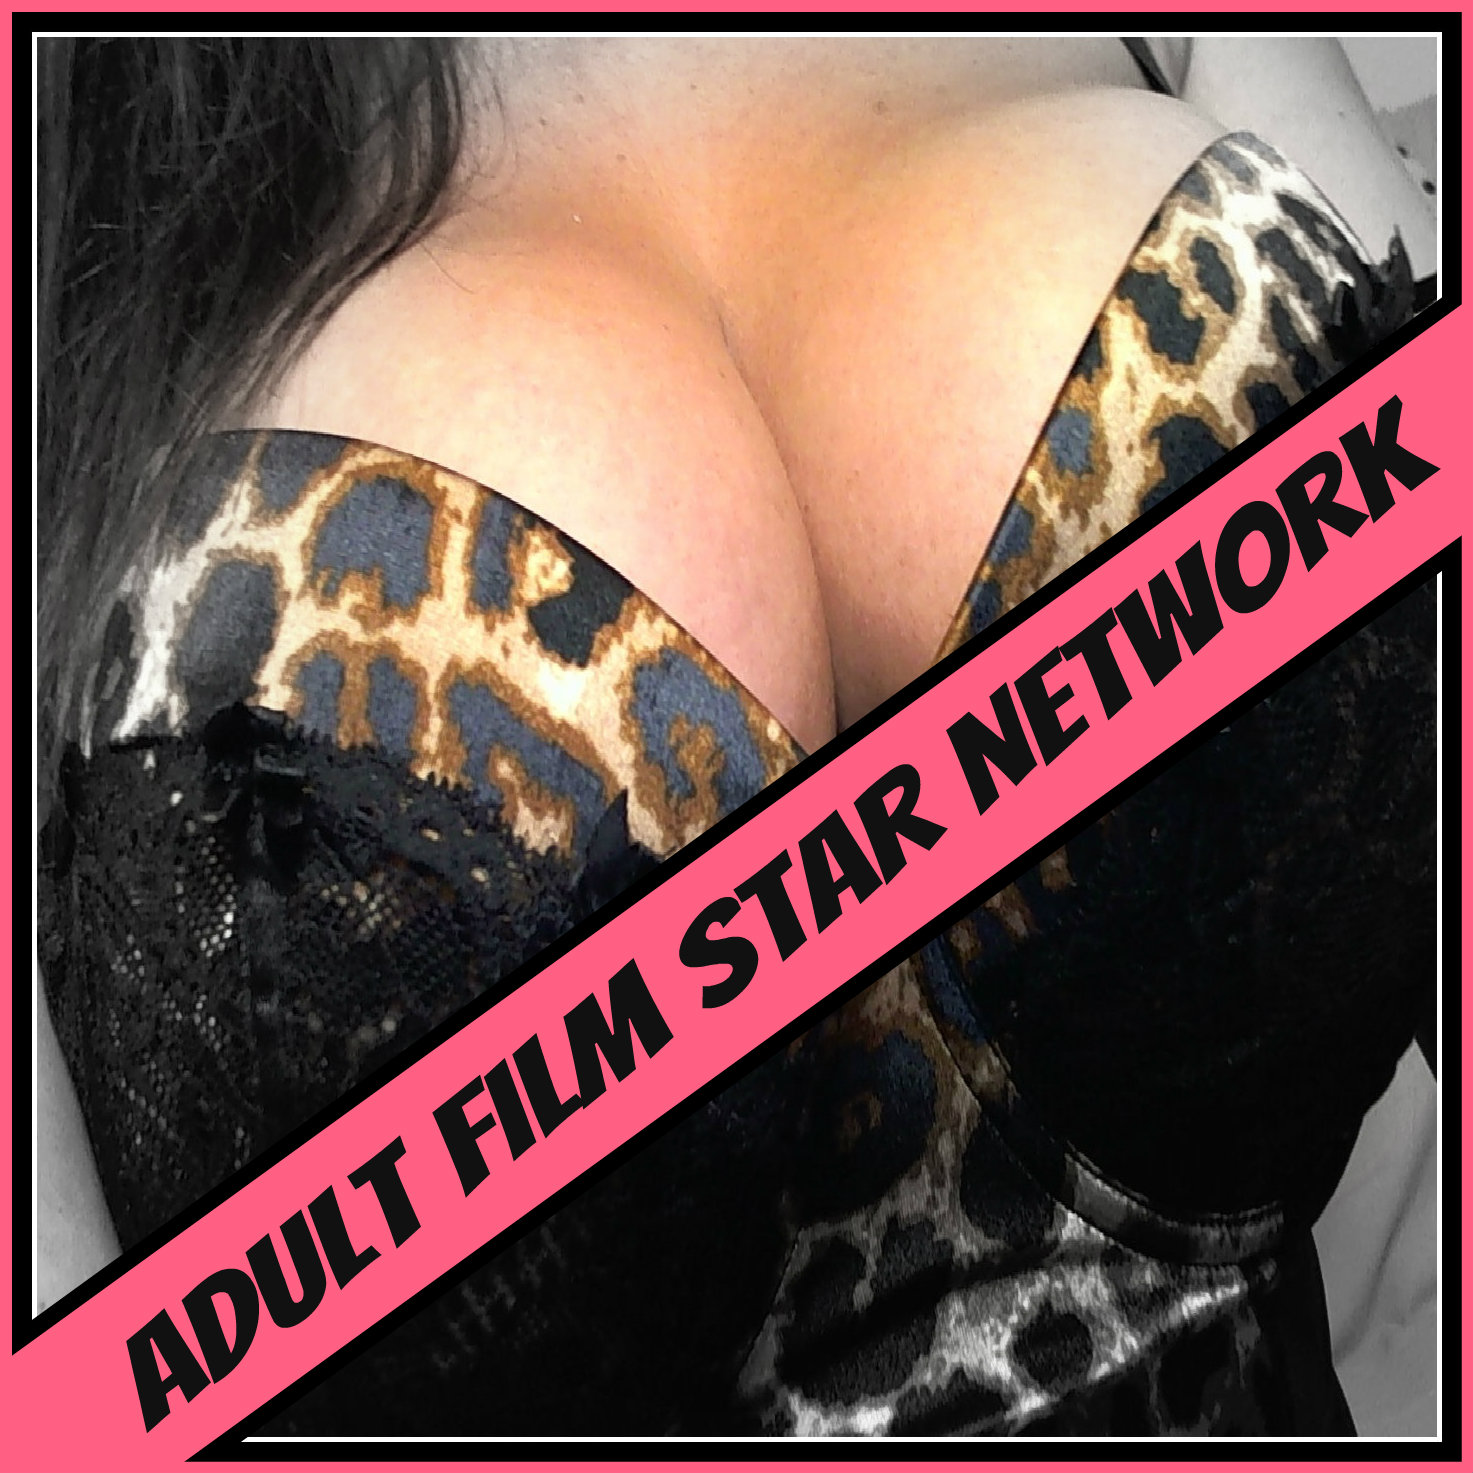 Adult Film Star Network | Rebecca Love | Joclyn Stone | Sexuality | Comedy | Sex Education | Fetish | Porn | Adult Business | Adult Industry